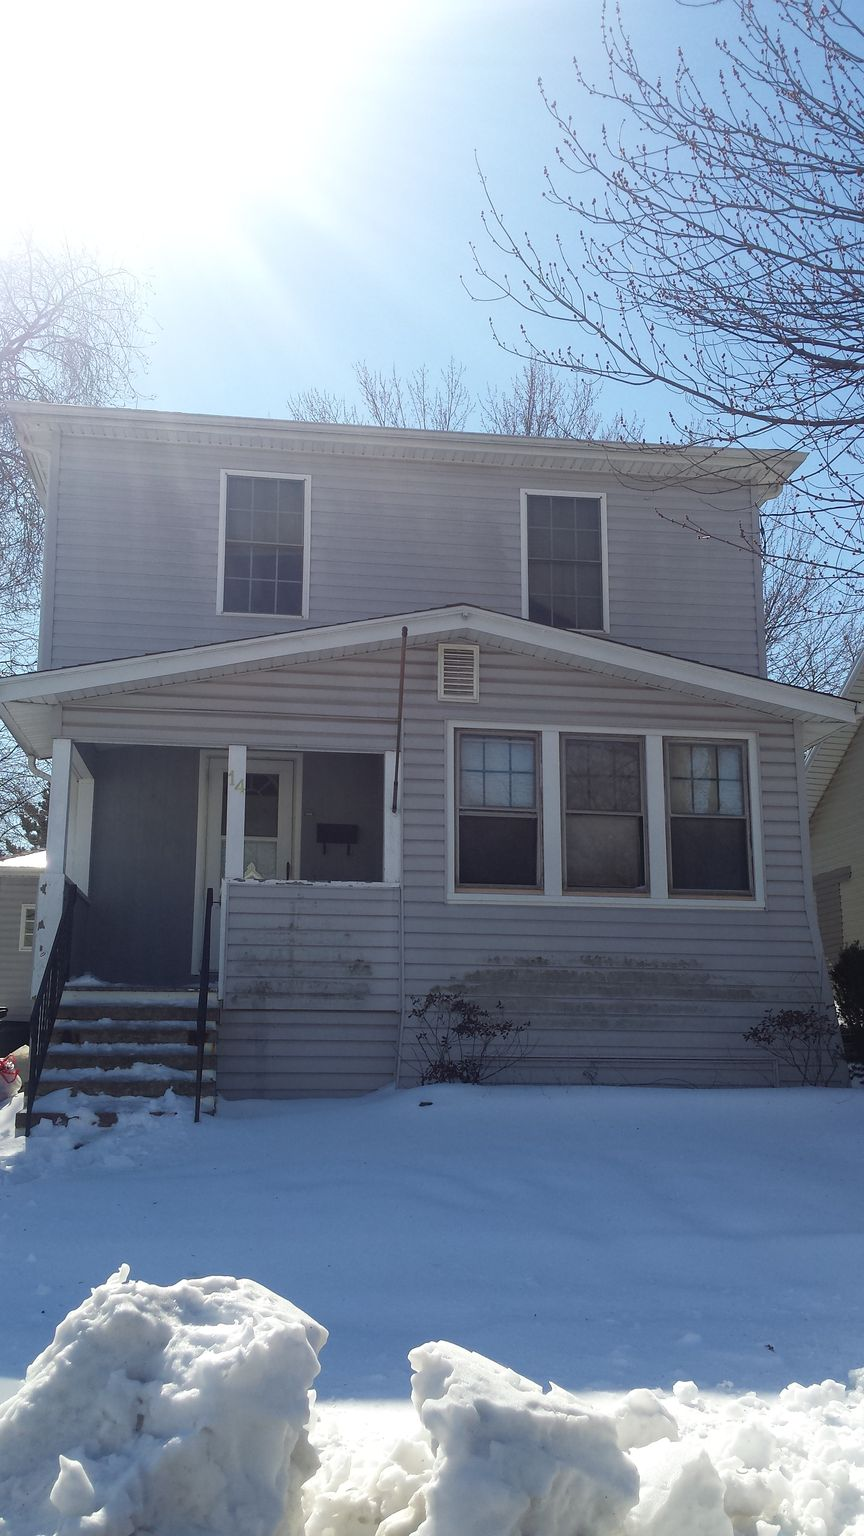 14 homeside ave west haven ct 06516 estimate and home details